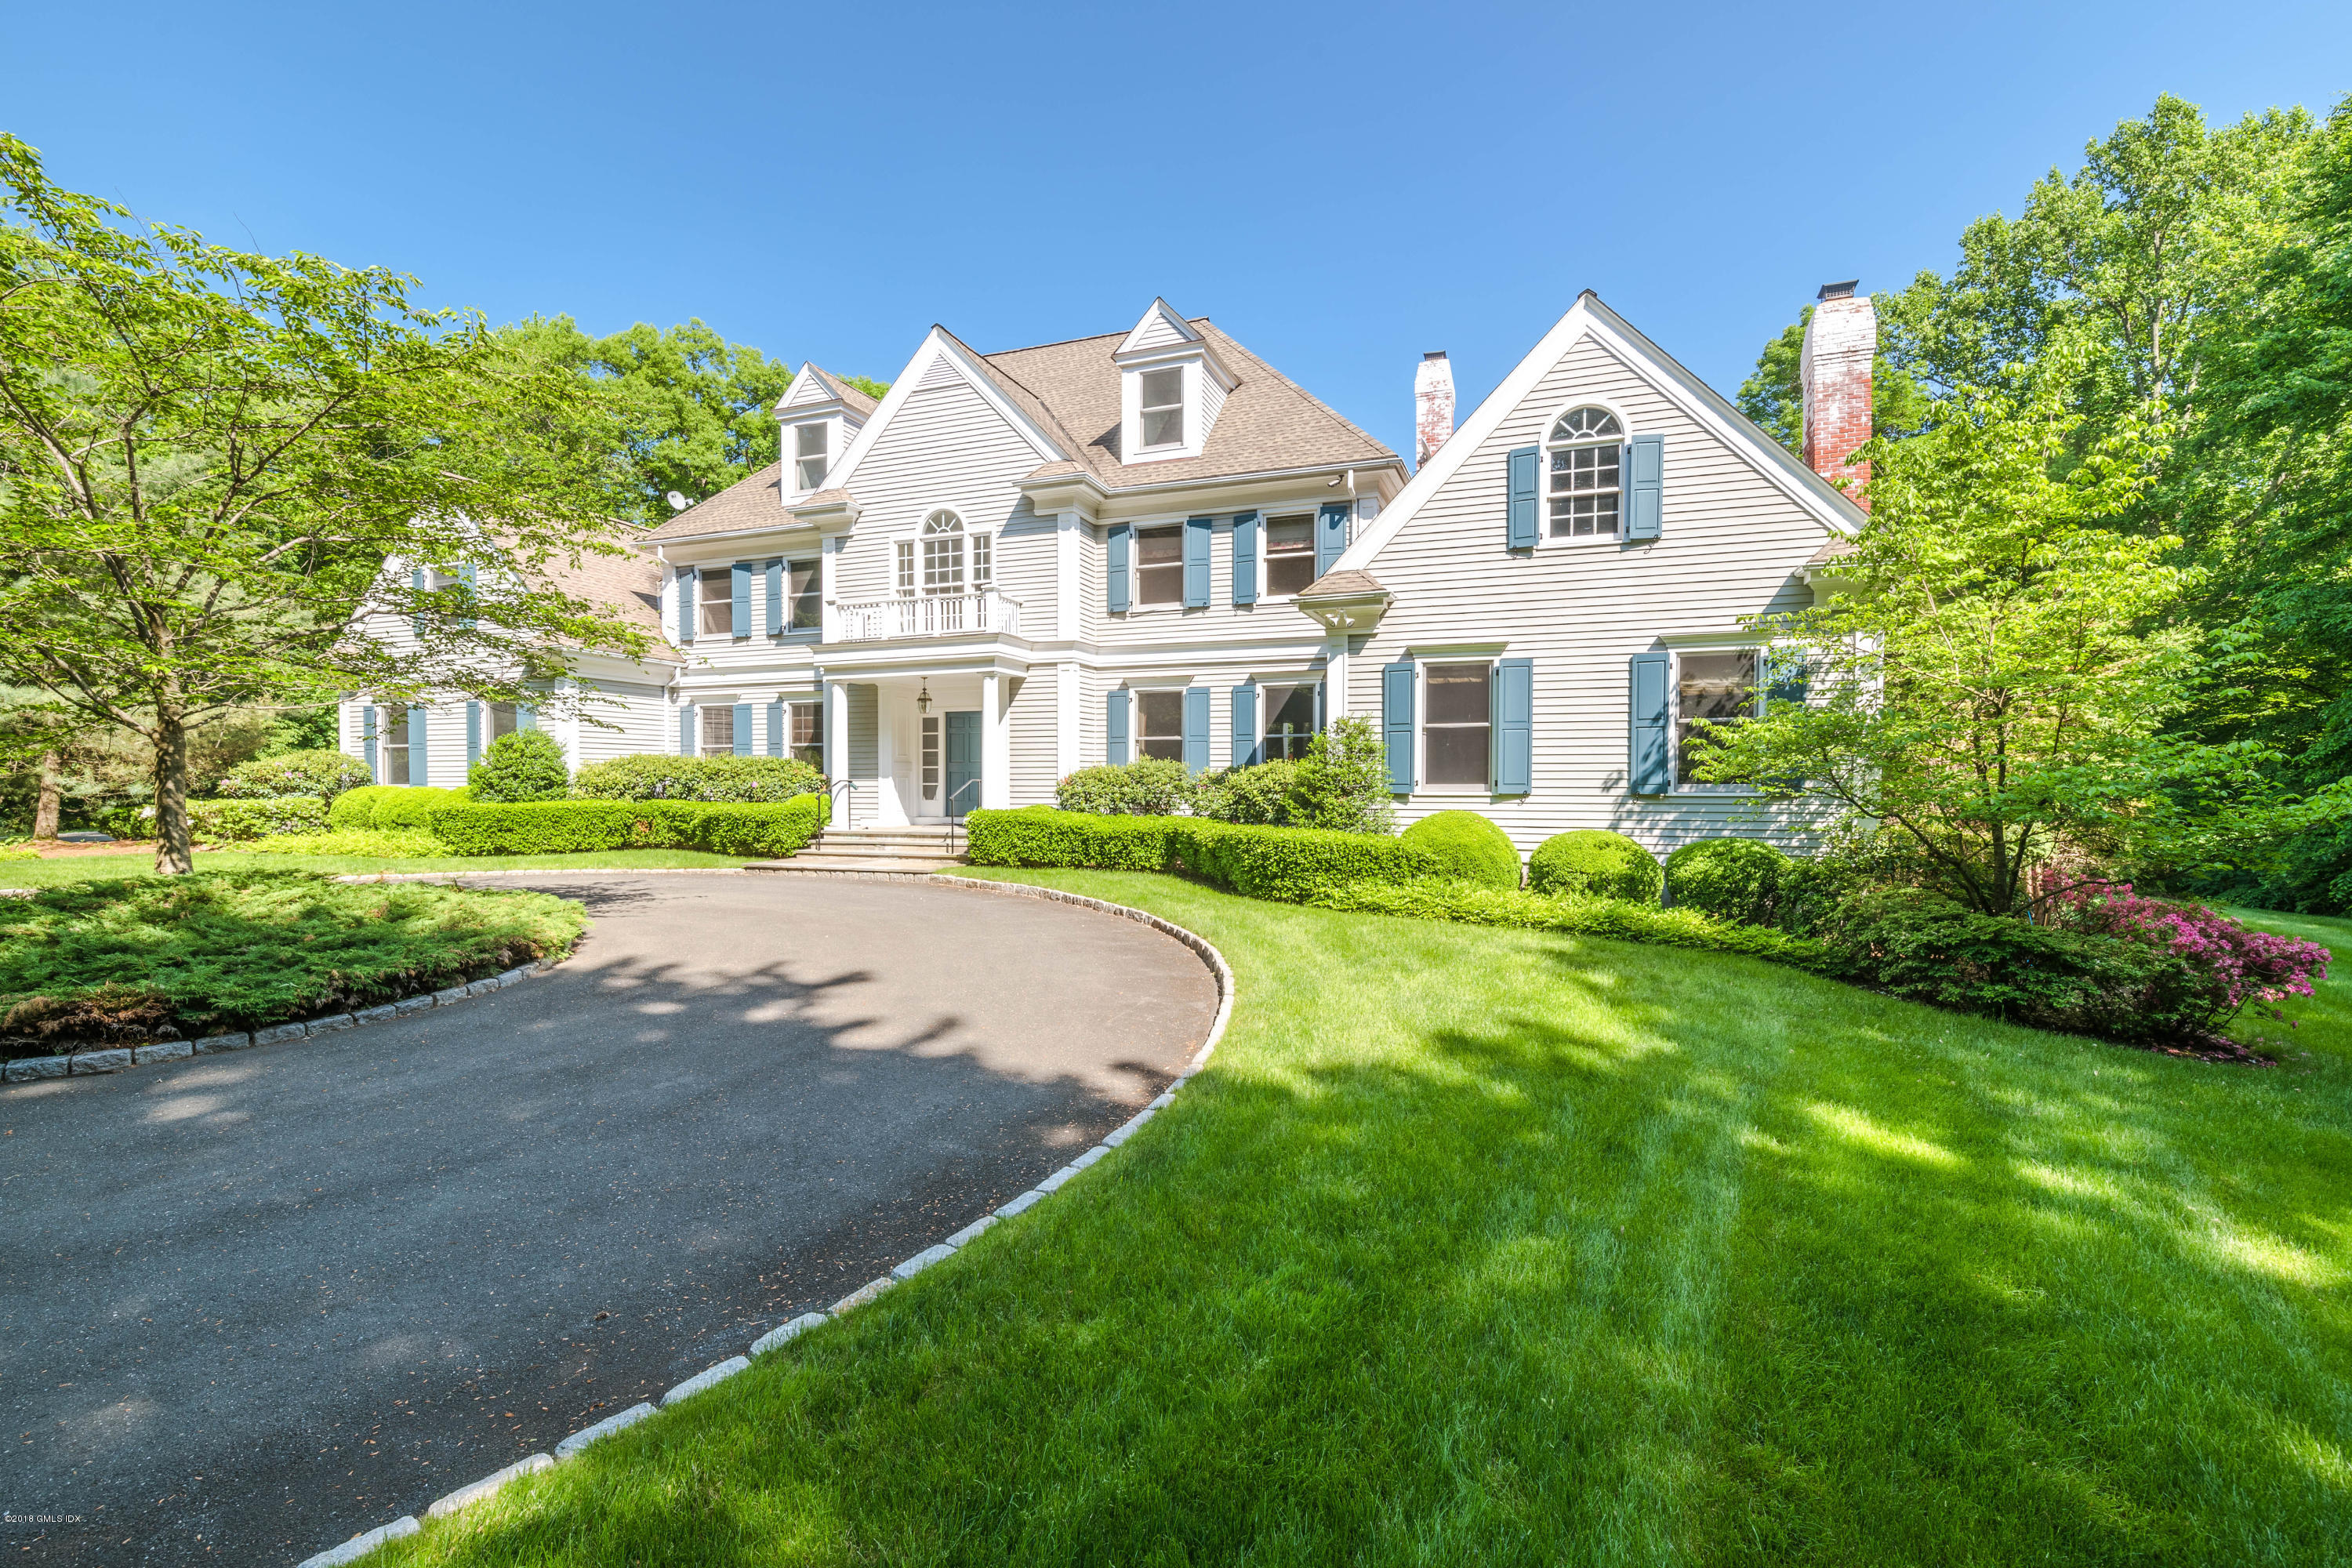 15 Mountain Laurel Drive,Greenwich,Connecticut 06831,6 Bedrooms Bedrooms,6 BathroomsBathrooms,Single family,Mountain Laurel,102944